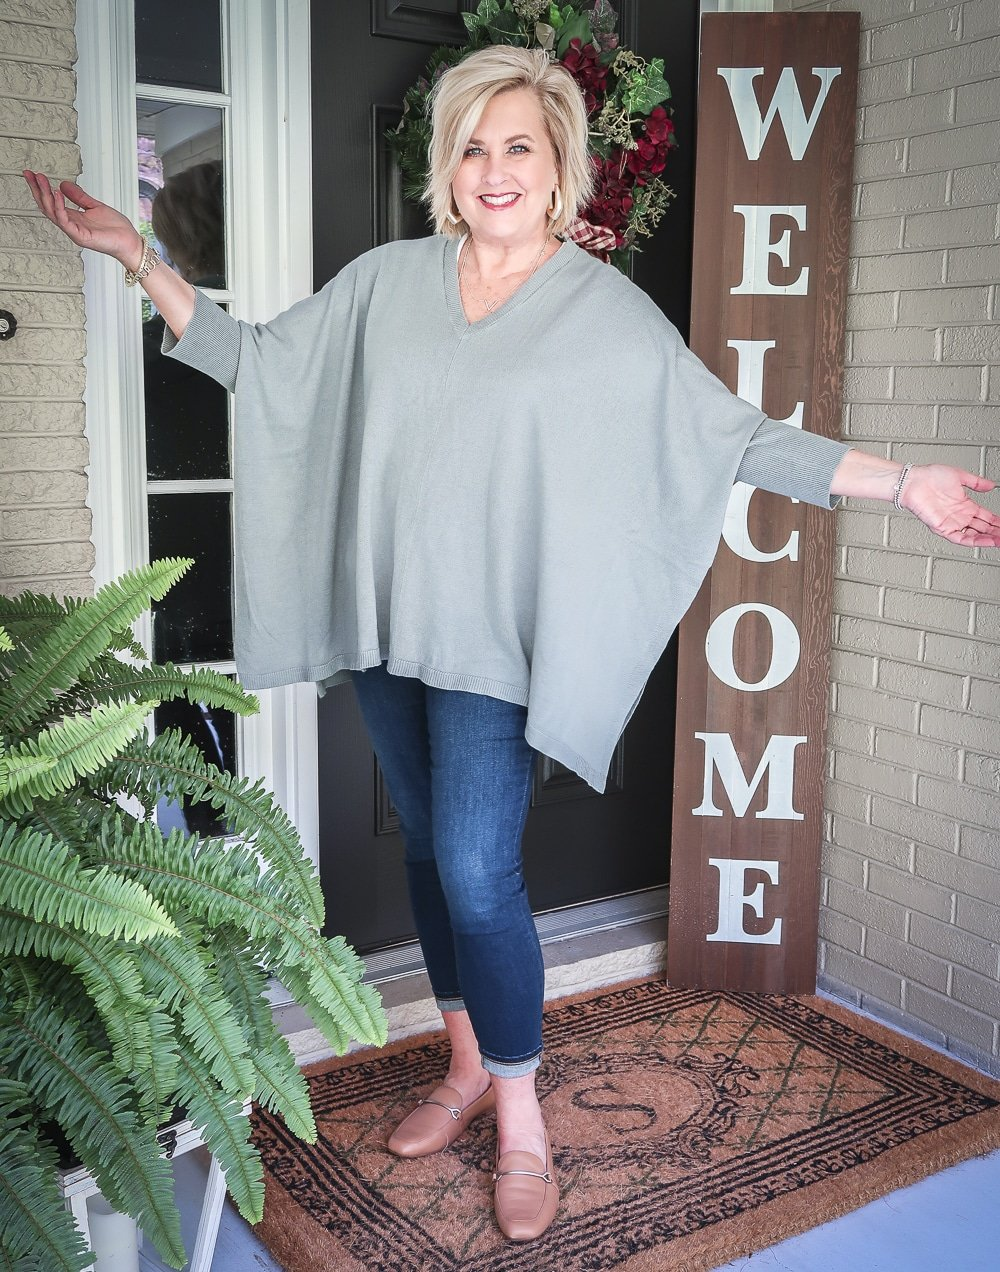 Fashion Blogger 50 Is Not Old is doing a Tuesday Try-On Session with Target and styling a marble green poncho, a white v-neck tee shirt, and dark jeans from Chico's